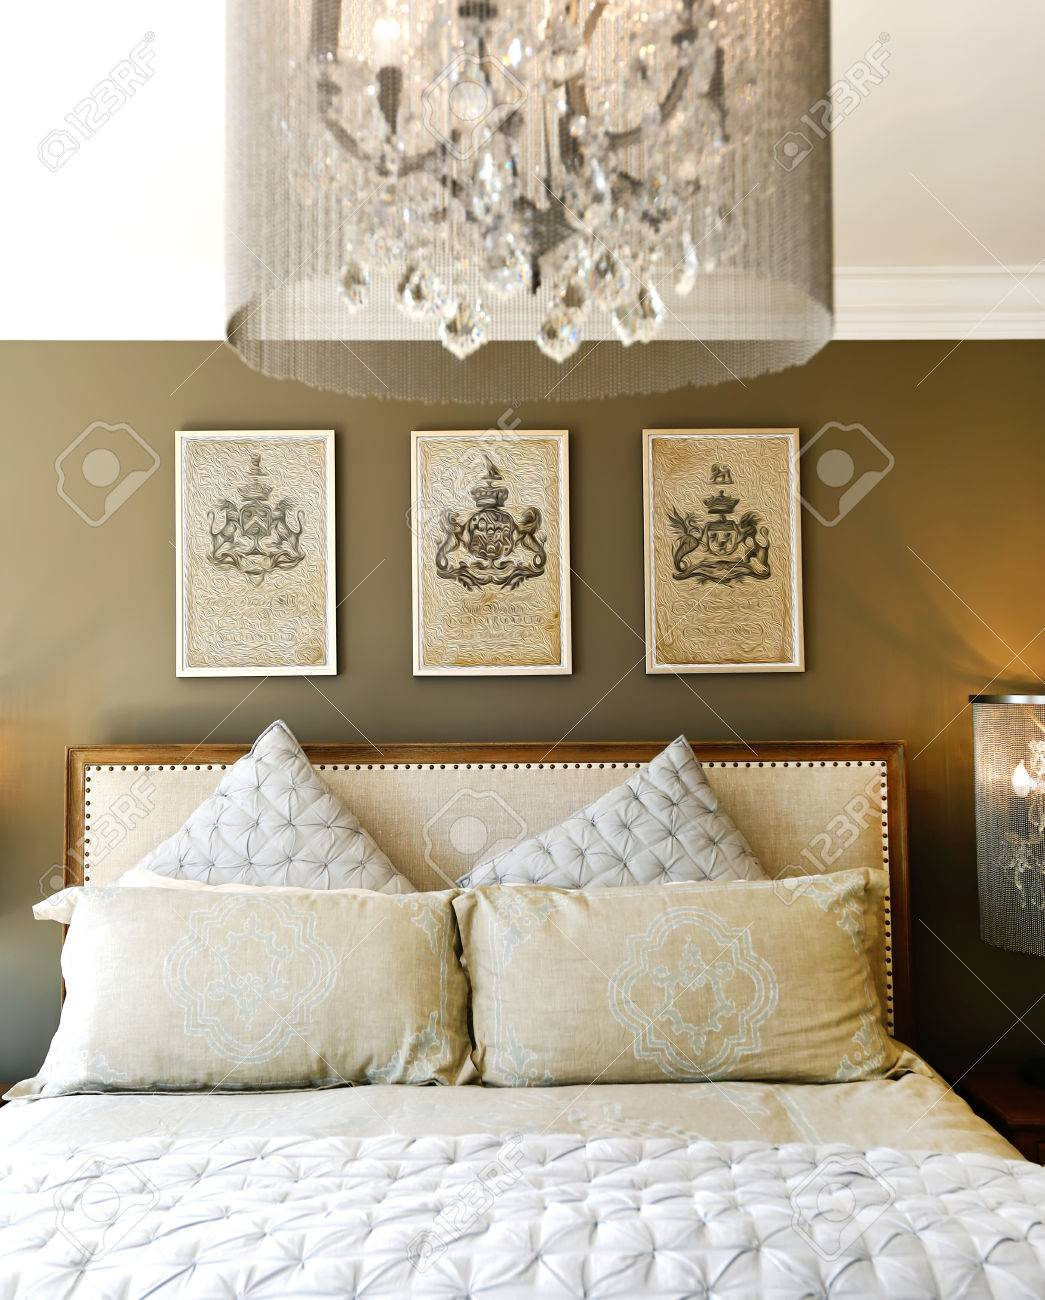 Lamps For Bedroom Nightstands Luxury Bedroom Furniture Carved Wood Bed With Pillows And Lamps